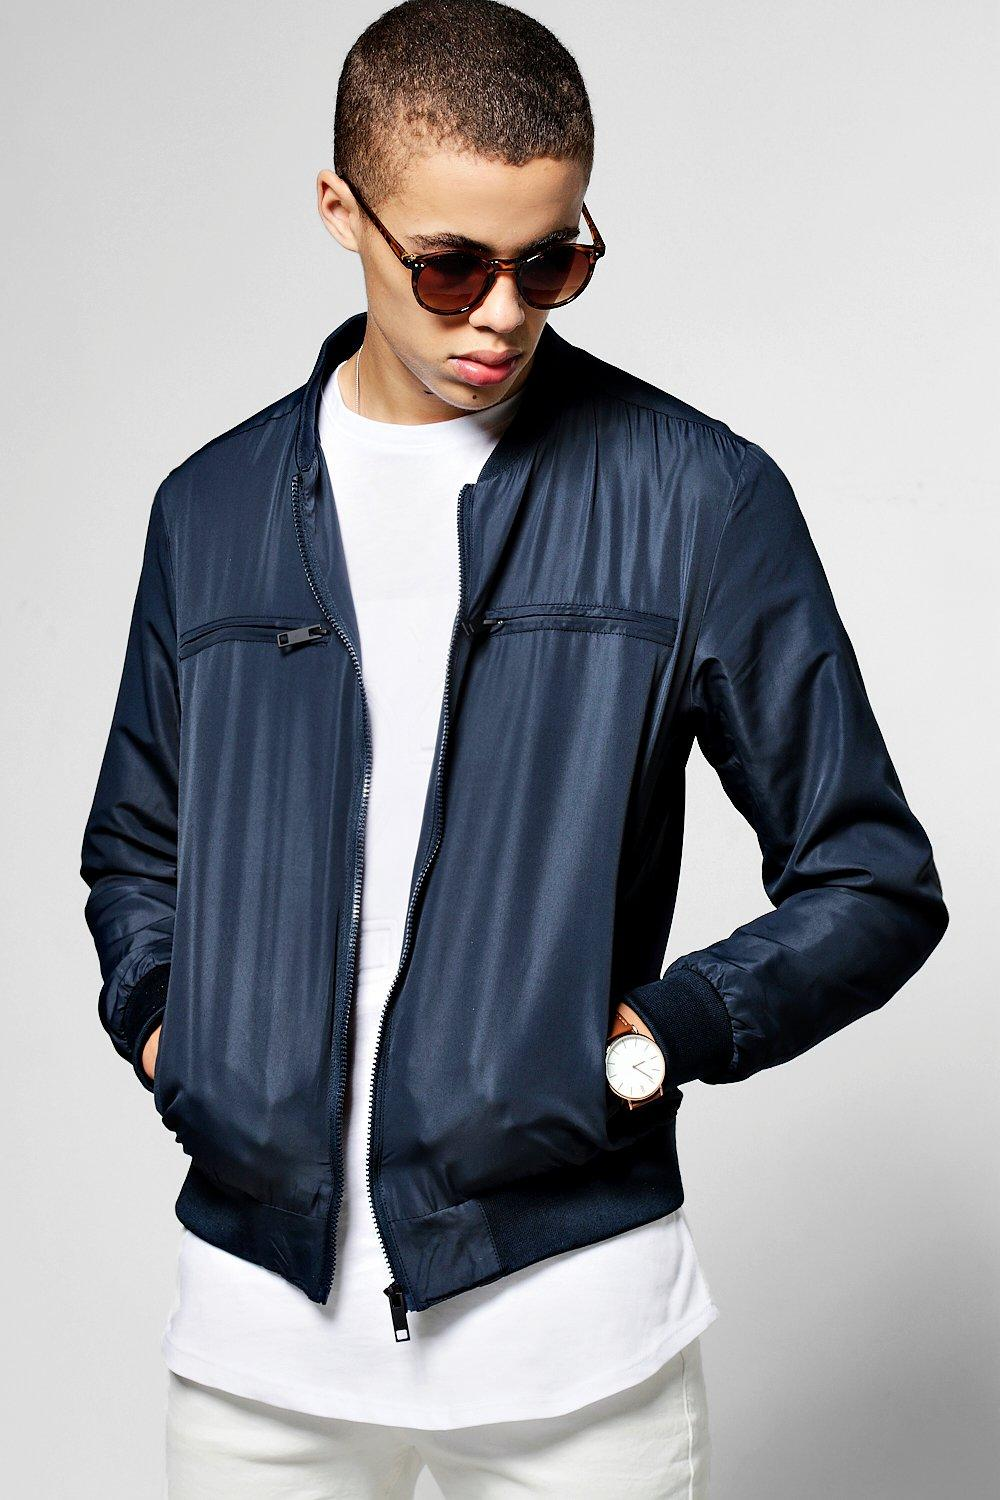 Polyester Bomber Jacket With Chest Zips Boohoo Jaket Boomber Blue Navy